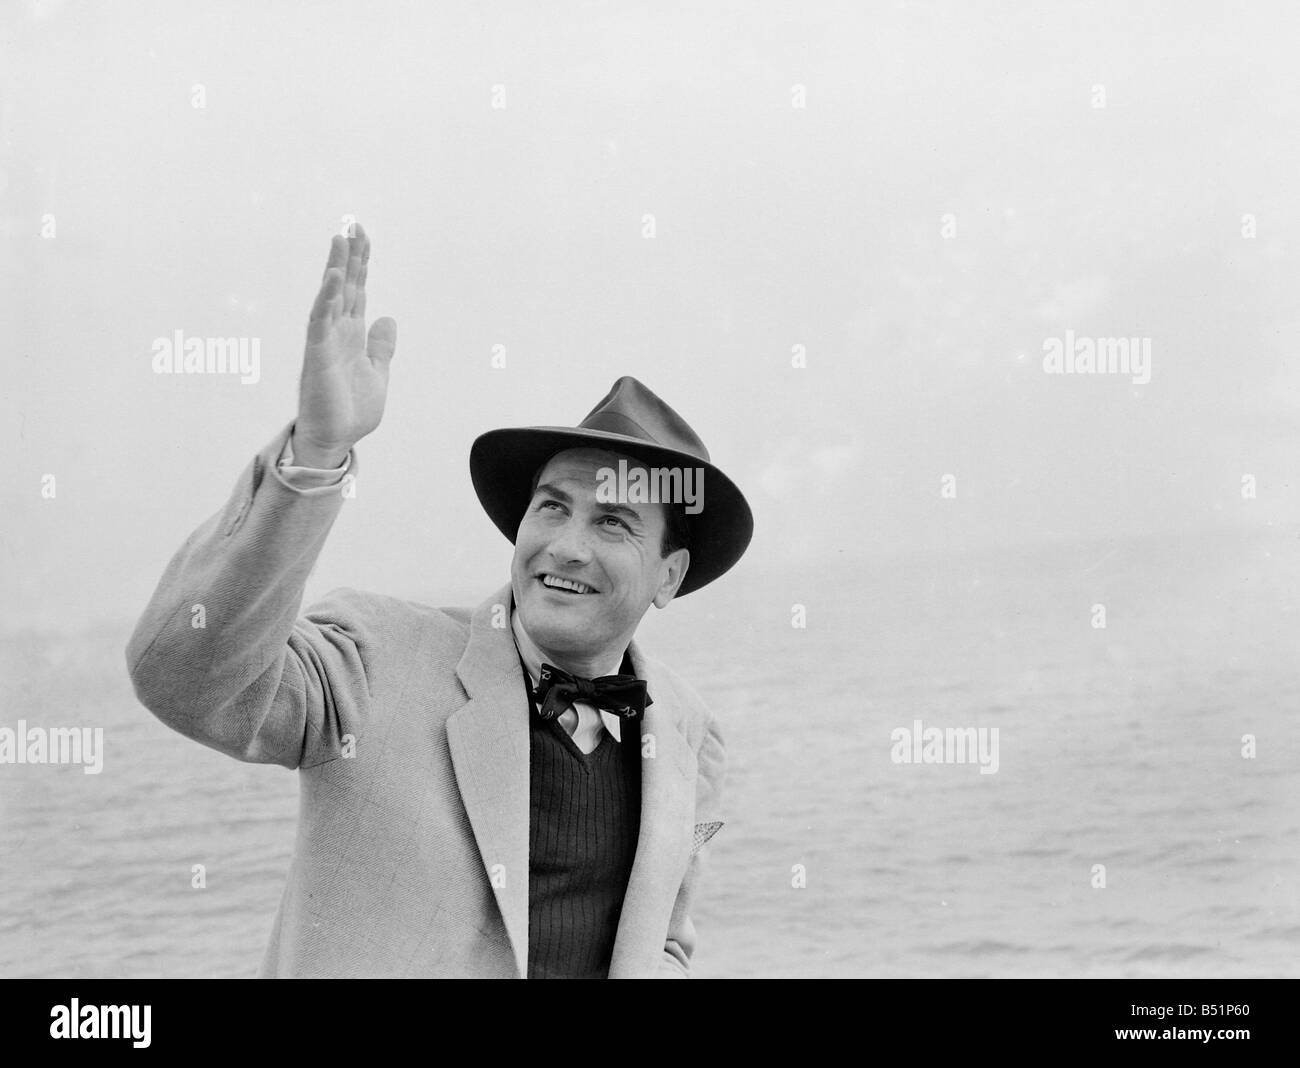 Artie Shaw Marriages Artie Shaw Black And White Stock Photos Images Alamy